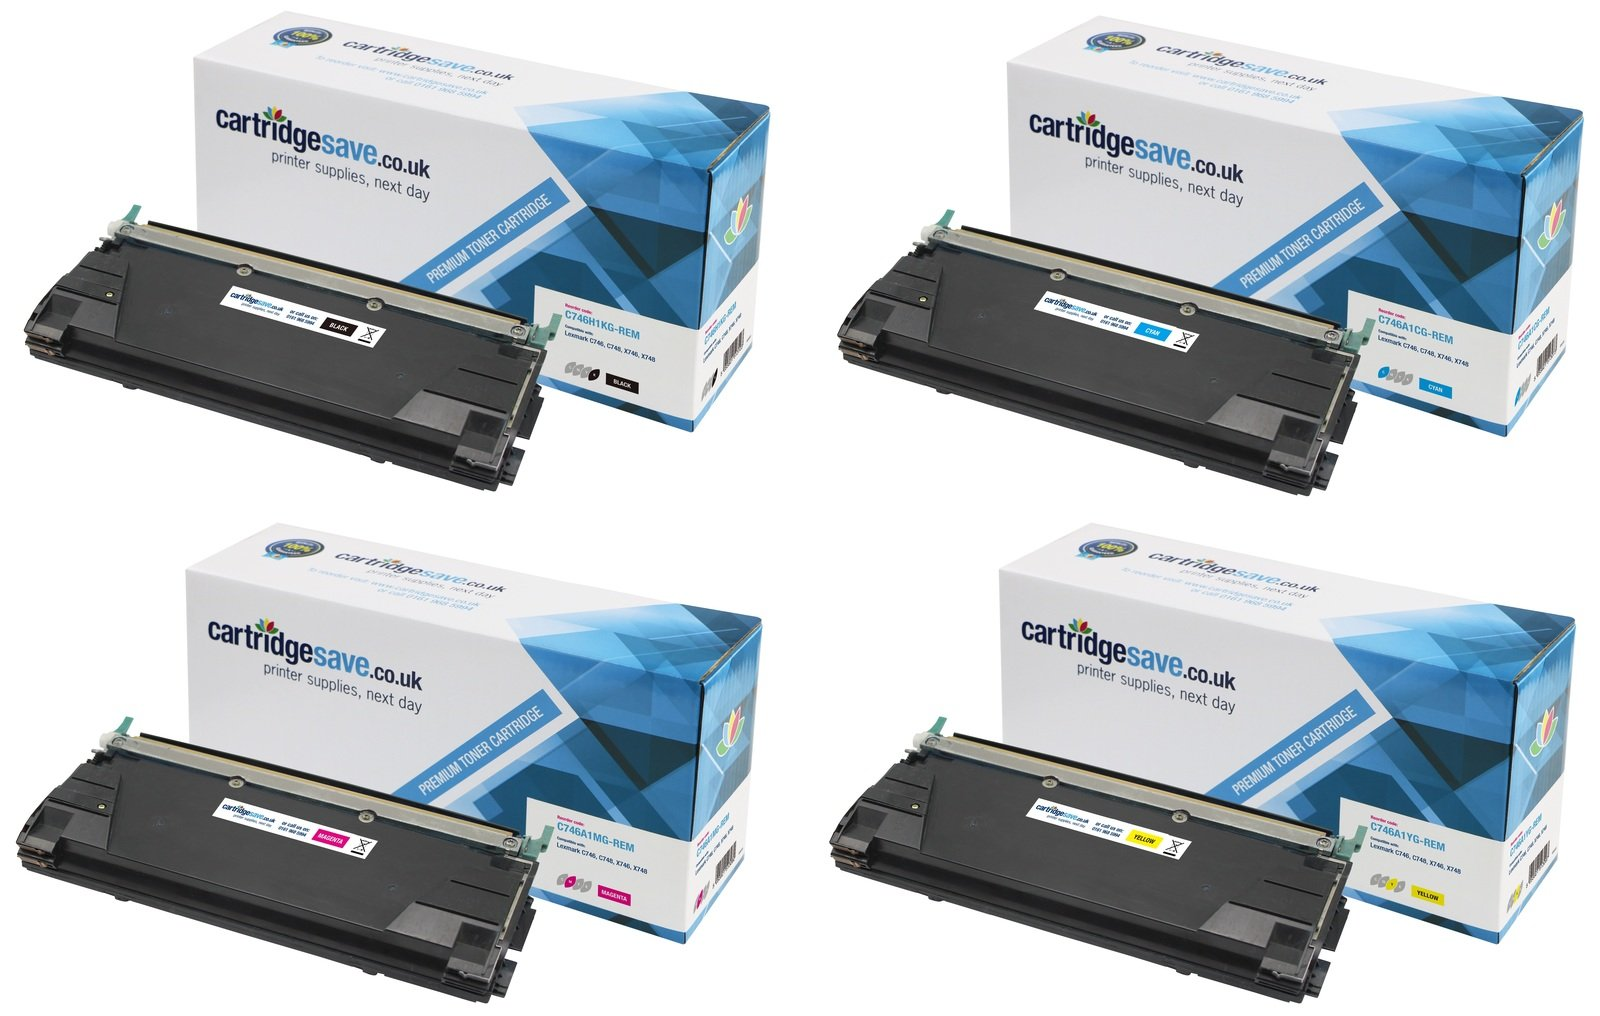 Compatible 4 Colour Lexmark C746 Toner Cartridge Multipack - (C746H1KG/ C746A1CG/ C746A1MG/ C746A1YG)